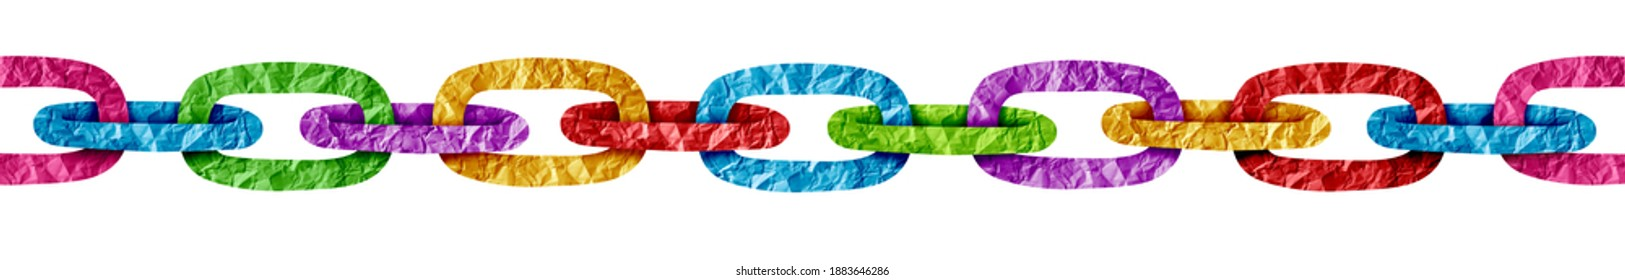 Paper Chain link as an abstract decorative colourful linked rings connected together as a diverse group unified together representing strength and diversity.